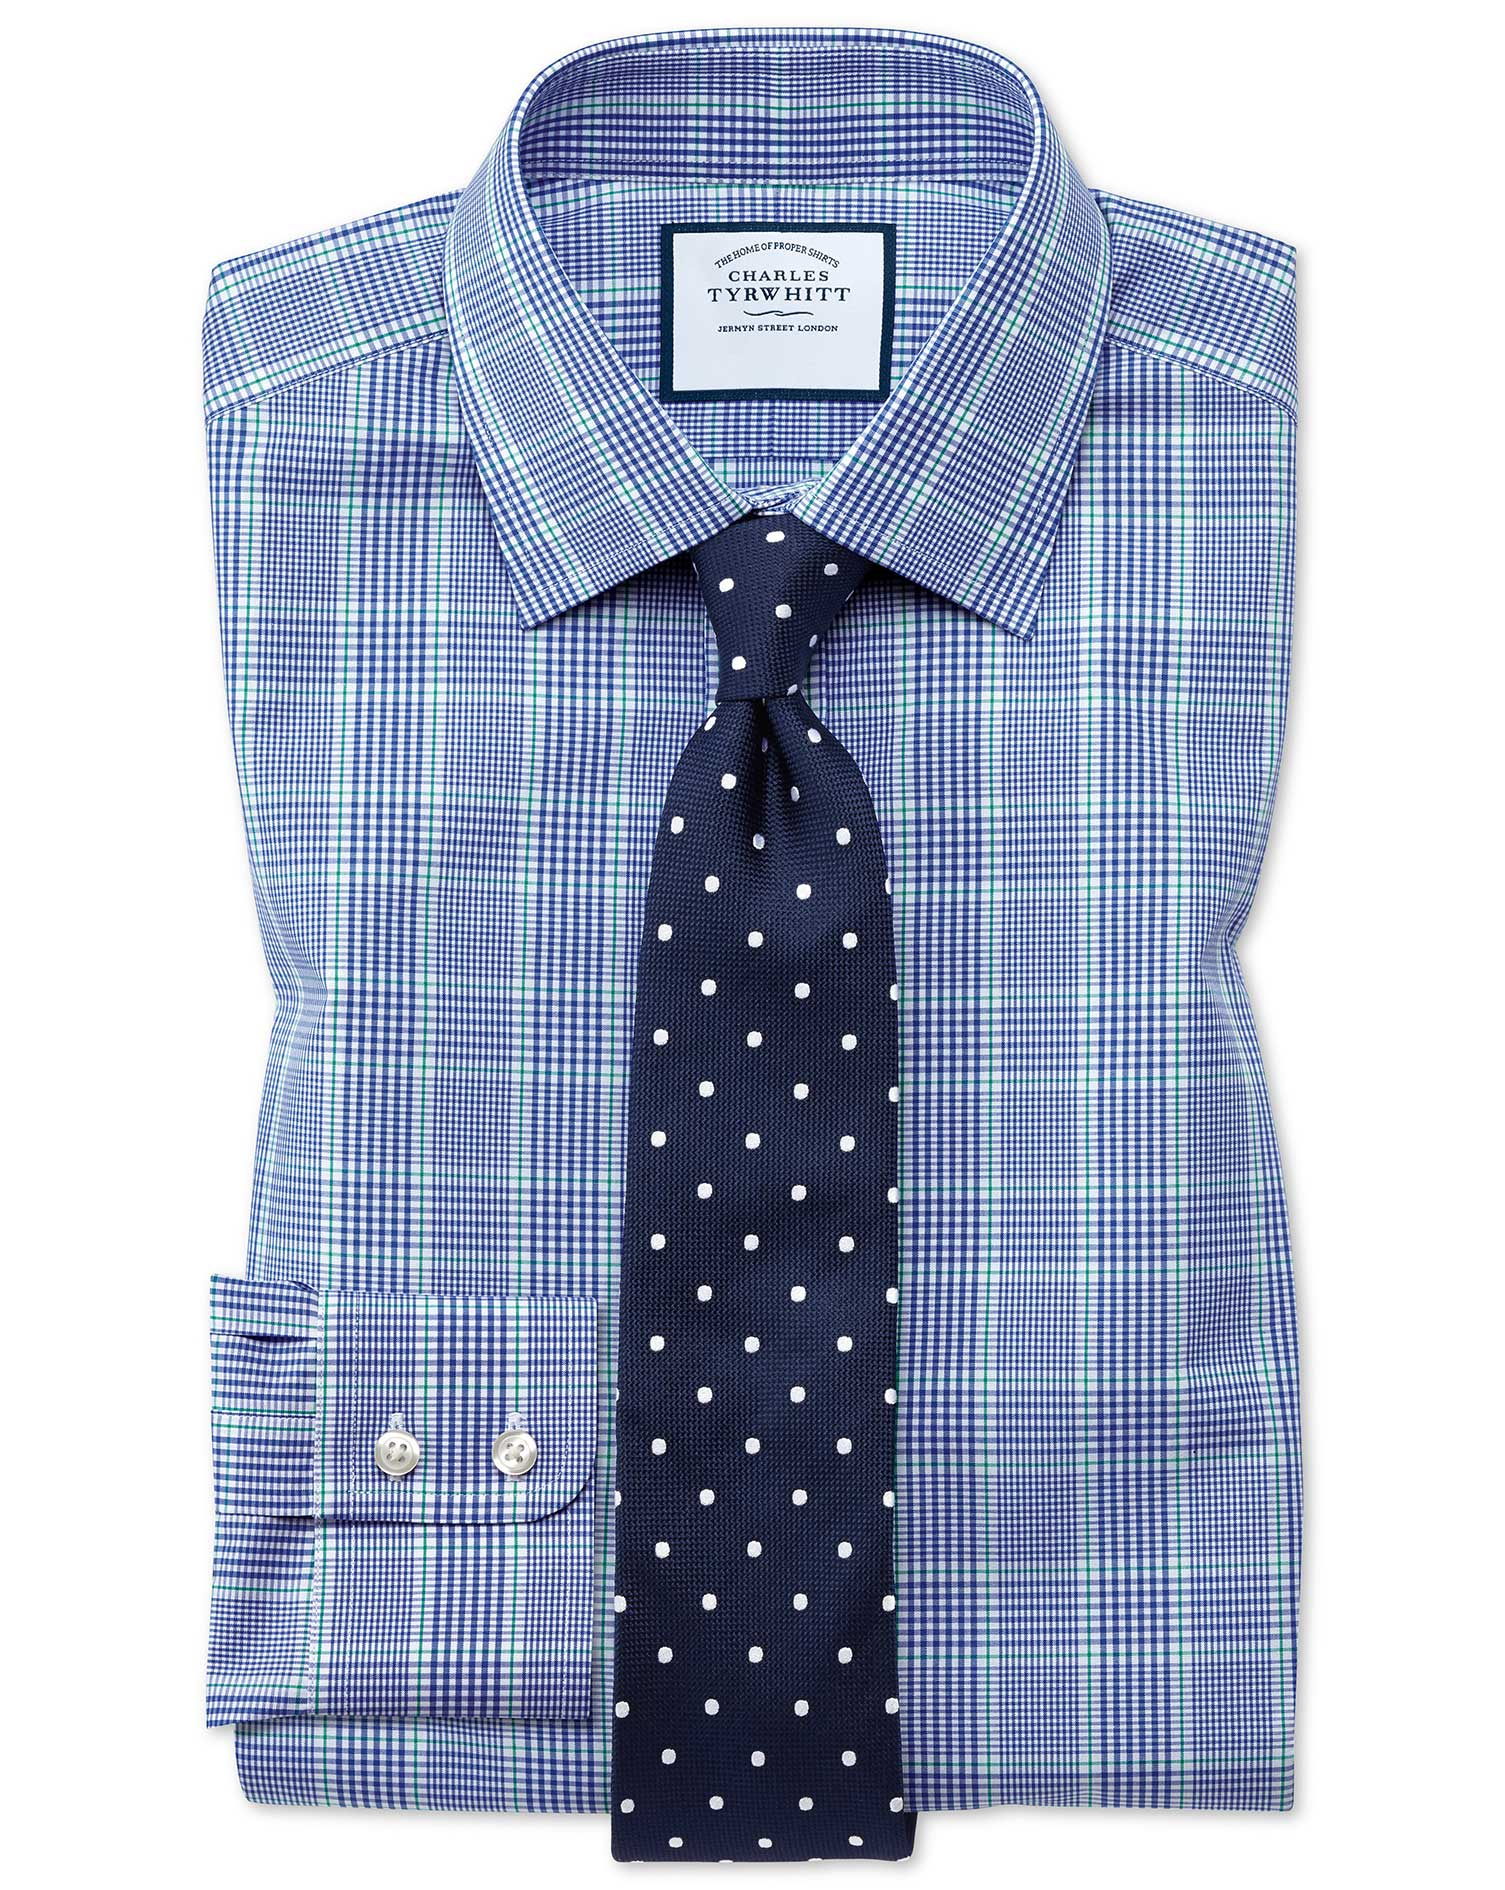 Extra Slim Fit Prince Of Wales Check Blue and Green Cotton Formal Shirt Single Cuff Size 16.5/33 by